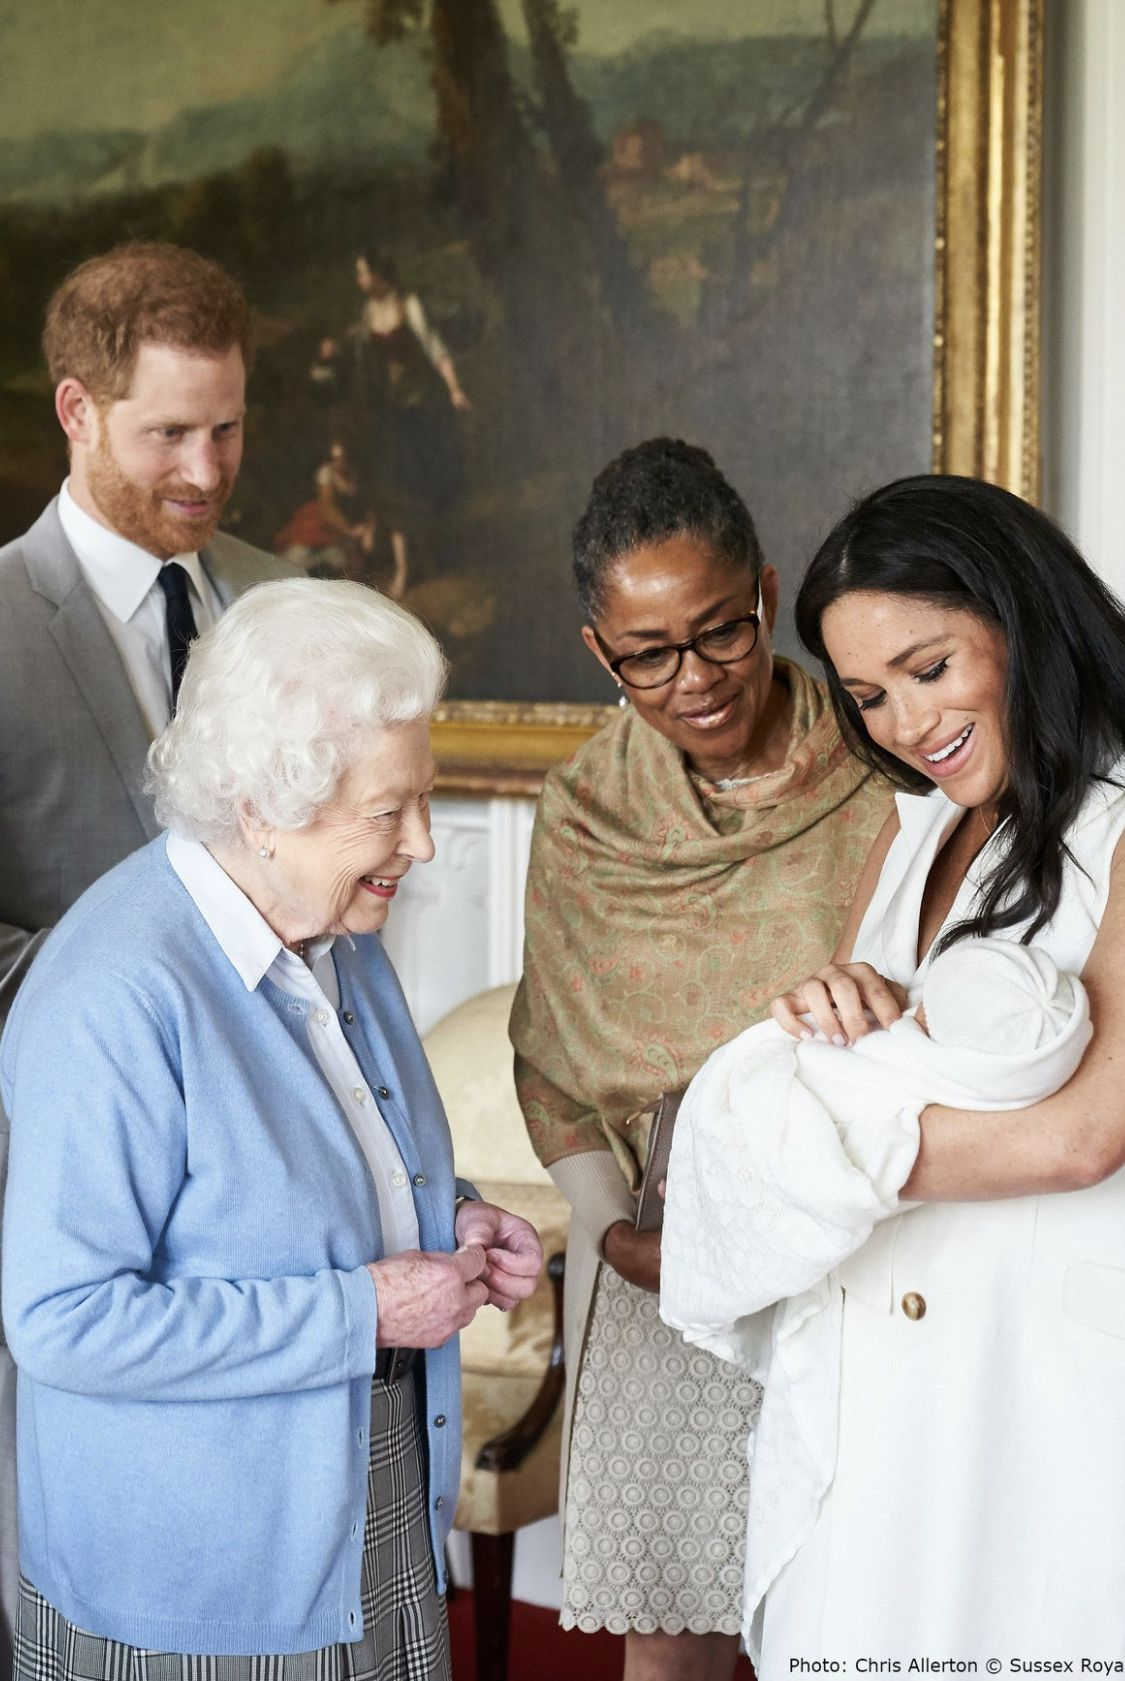 The Queen Meeting Baby Archie Harry And Megan Markle S First Child Prince Harry And Meghan Markle Meghan Markle